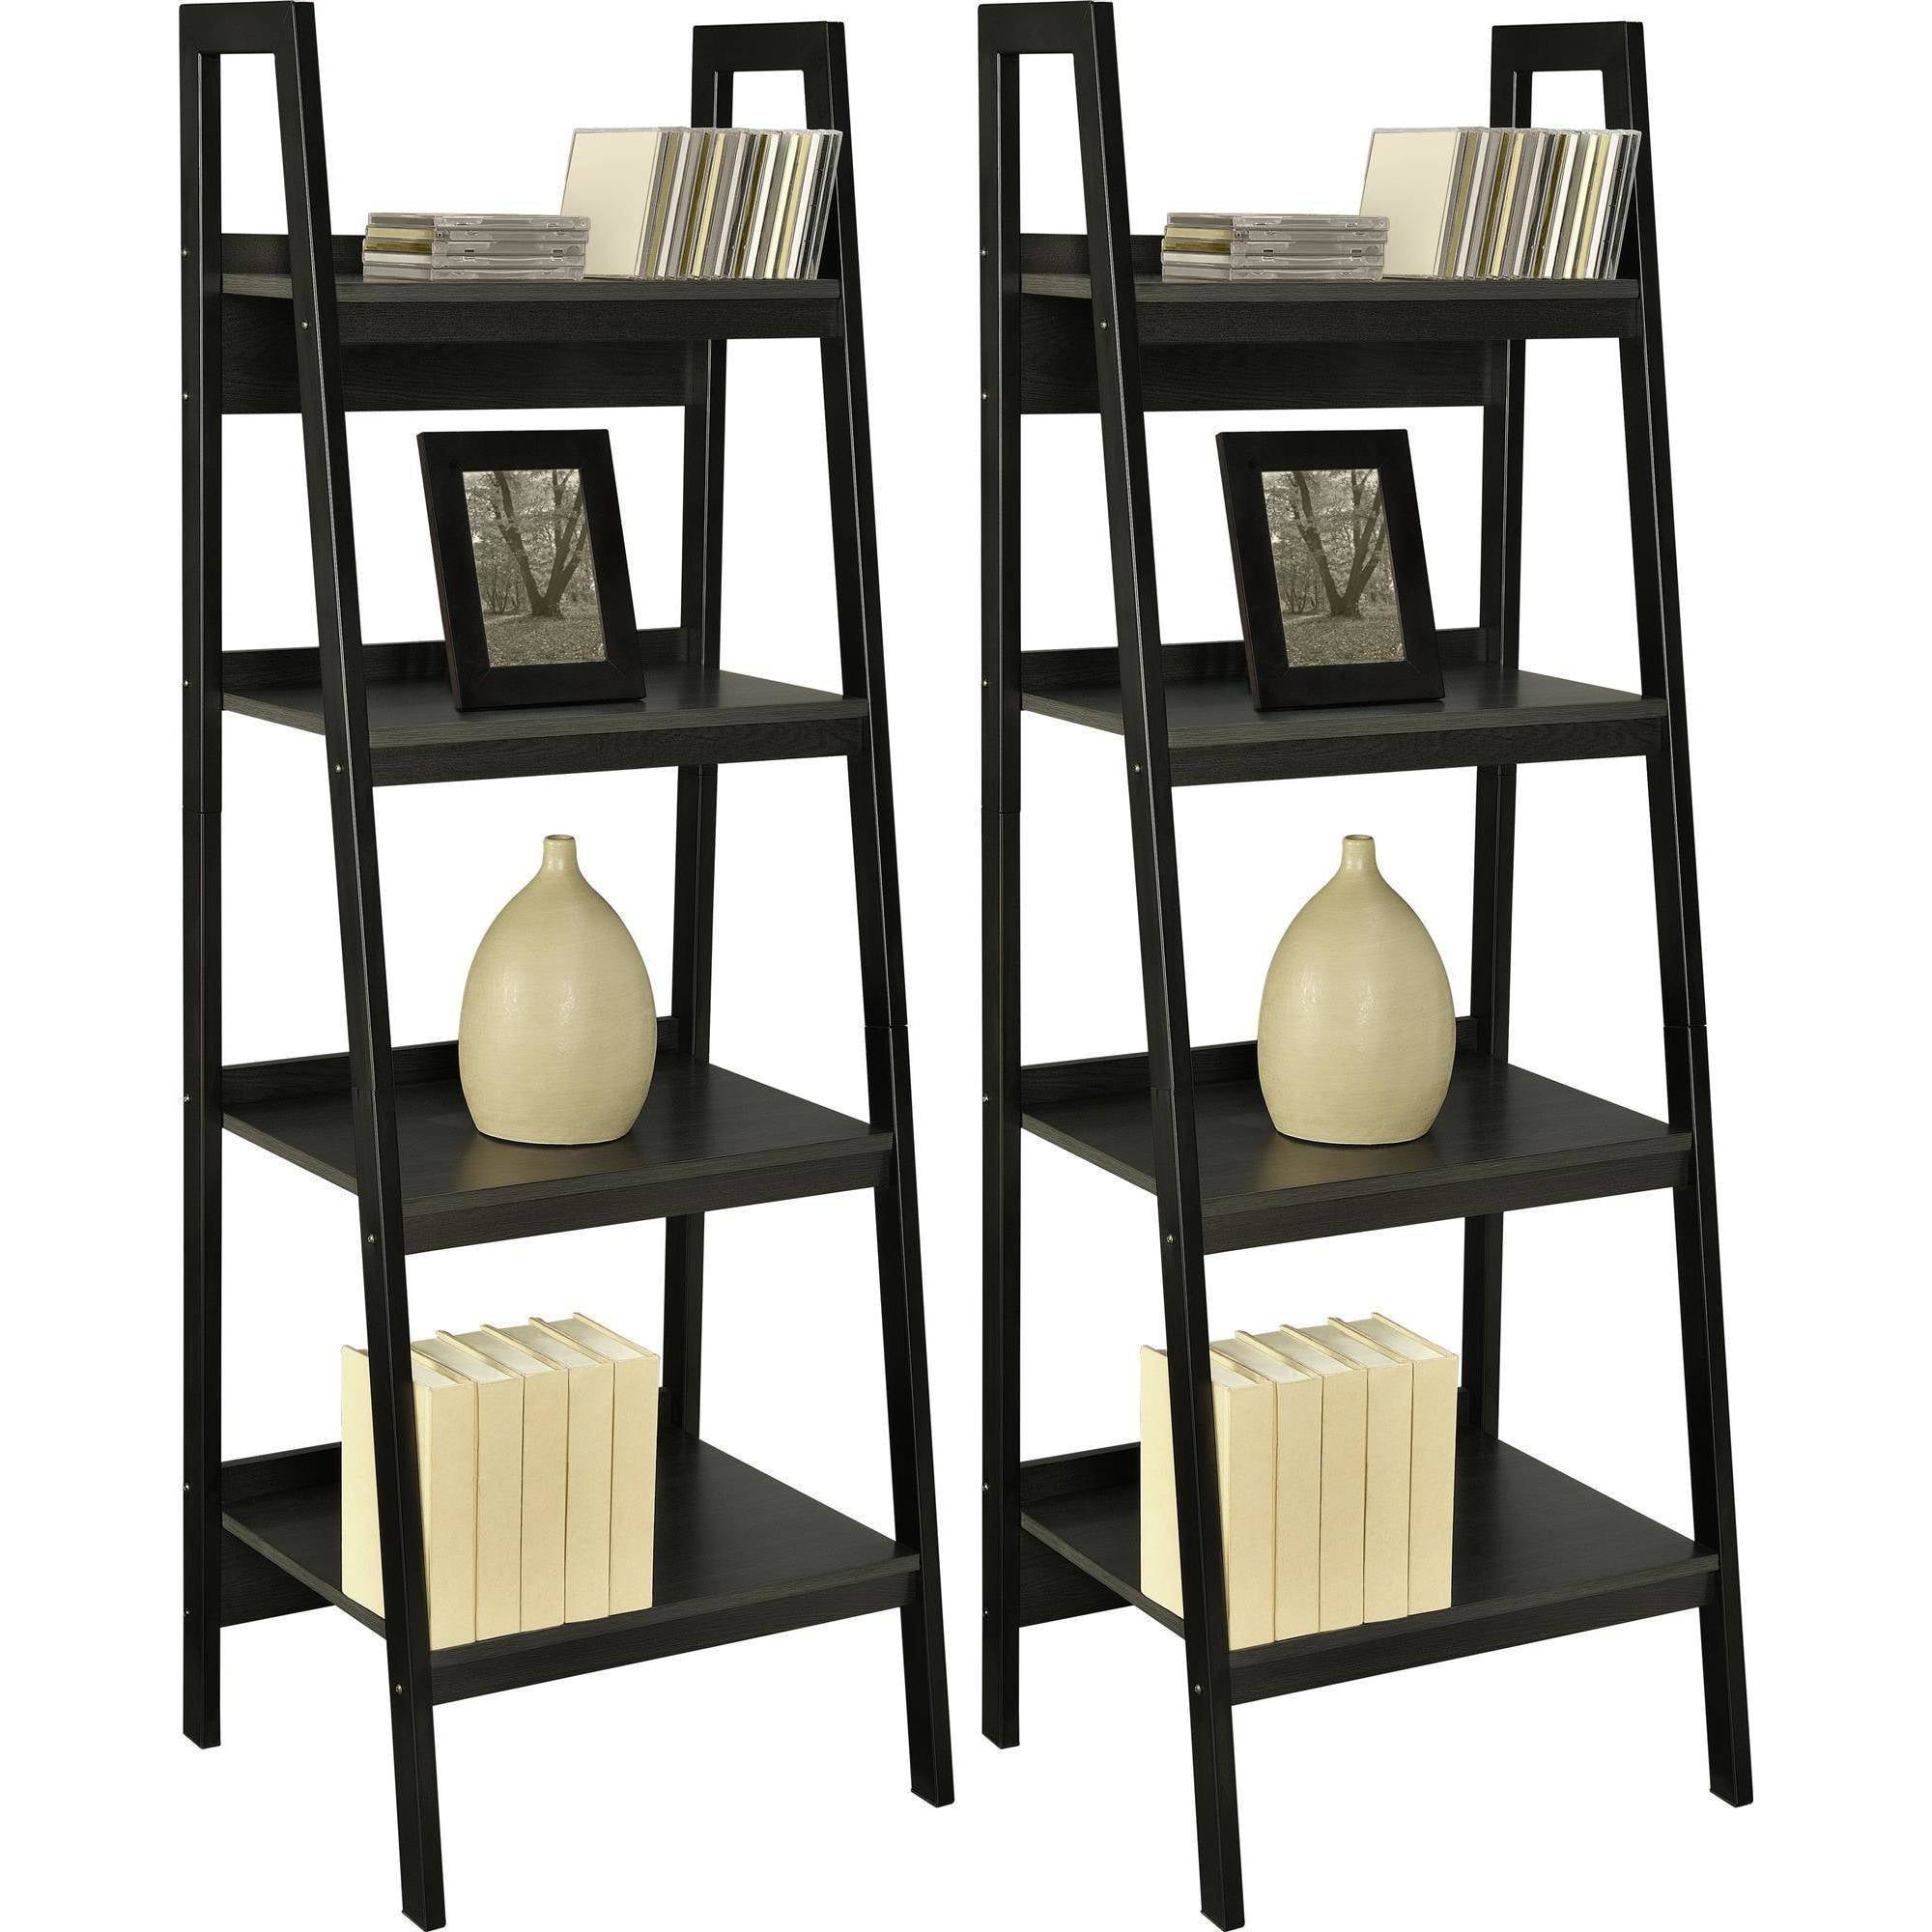 Ameriwood Home Lawrence 4 Shelf Ladder Bookcase Bundle Black Set Of 2